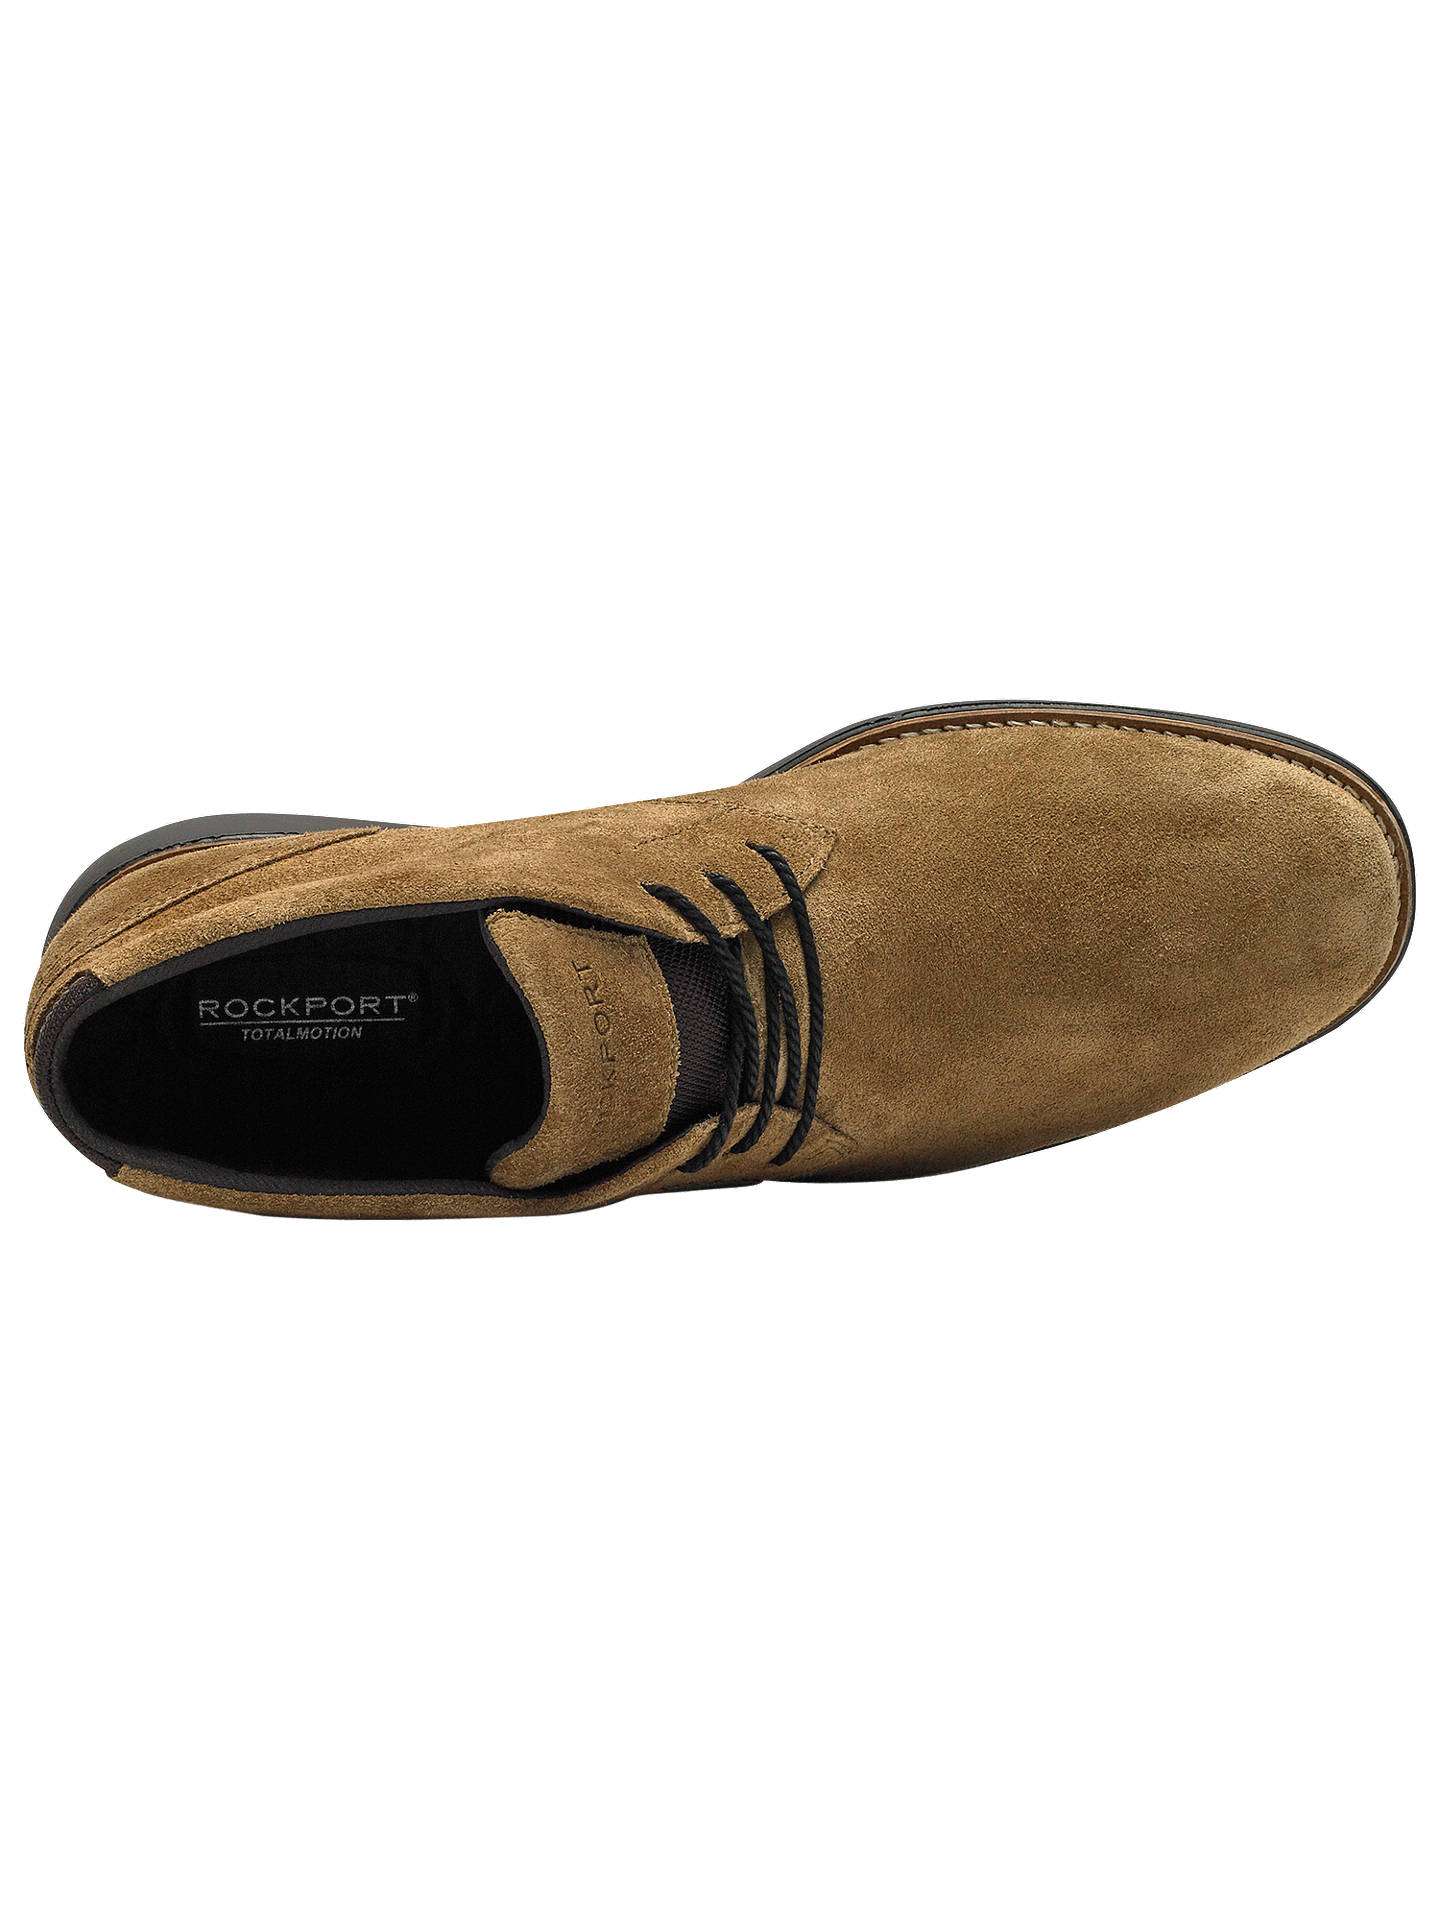 Buy Rockport Total Motion C.F. Stead Suede Sports Chukka Boots, Burnt Sugar, 9 Online at johnlewis.com